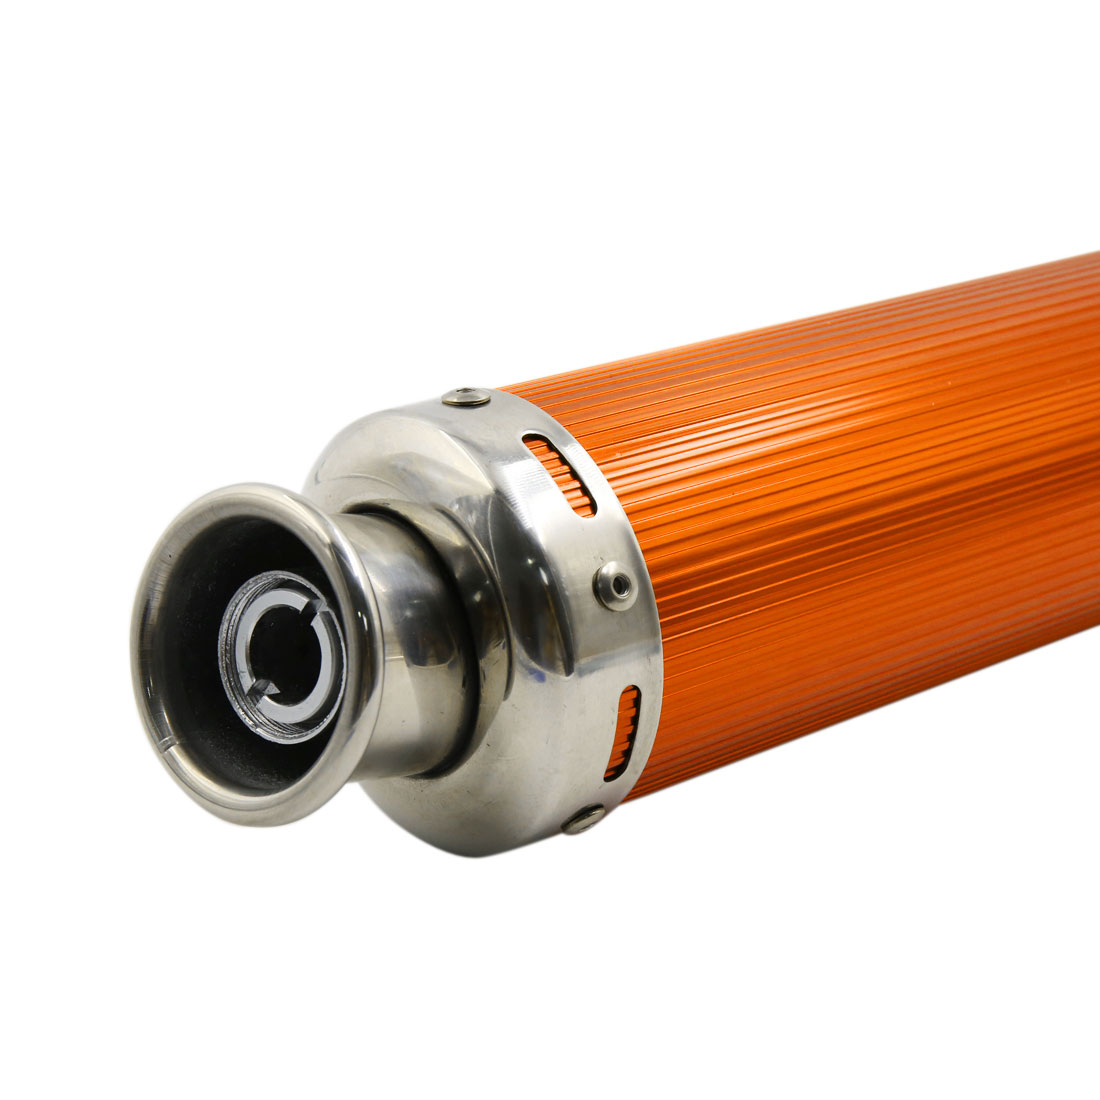 360 x 90mm Gold Tone Aluminum Alloy Cylinder Shaped Motorcycle Exhaust Pipe - image 2 de 5